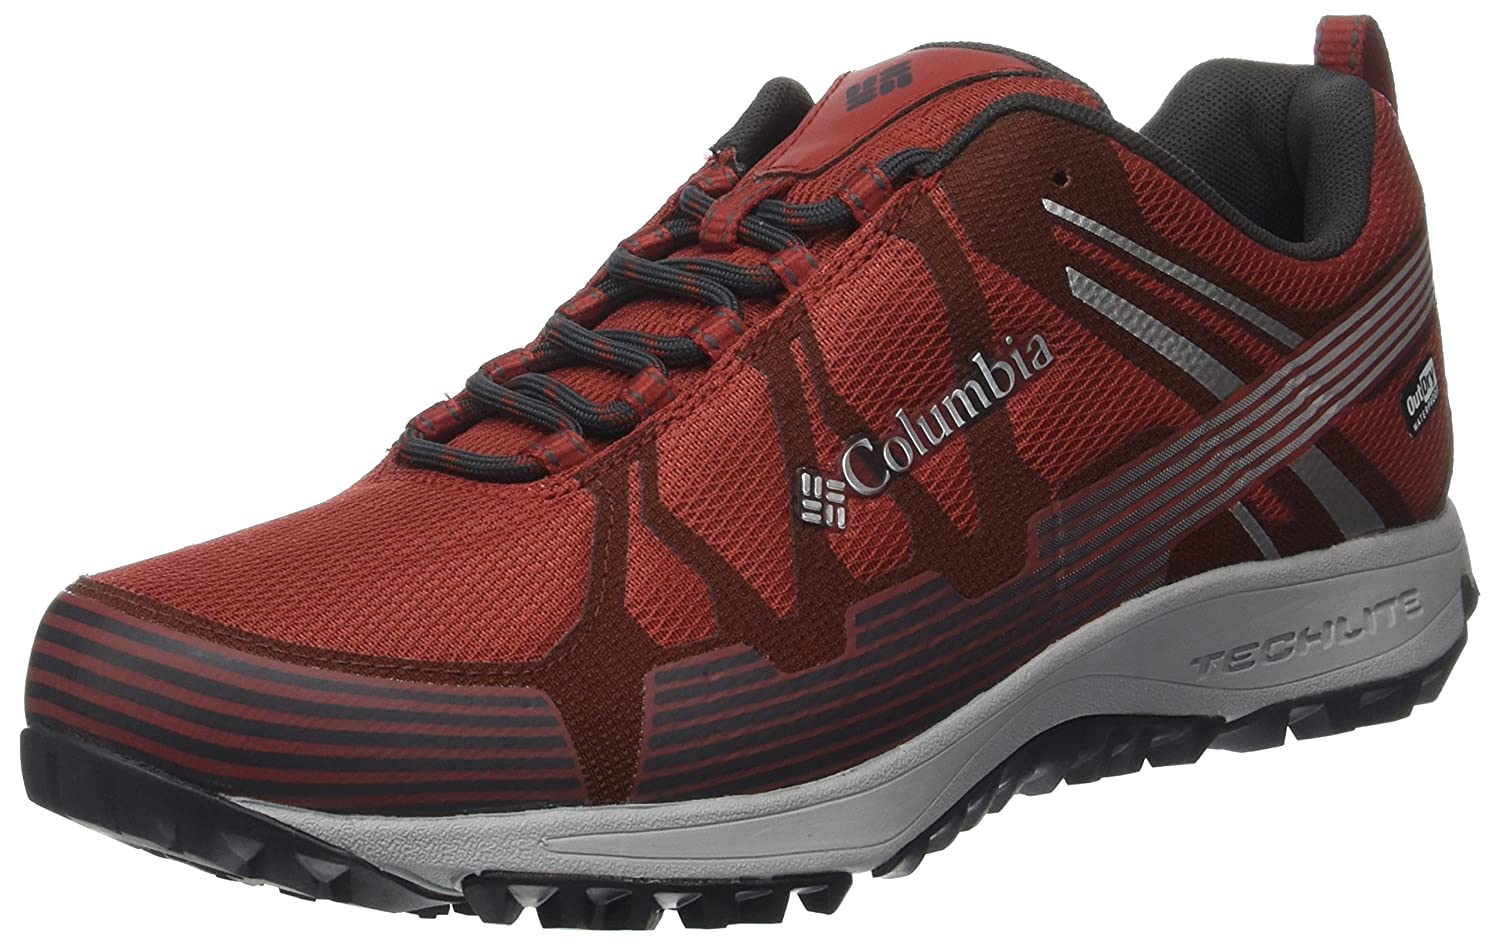 7fb656ddb9942 Columbia Men's Conspiracy V Outdry Low Rise Hiking Boots: Amazon.co.uk:  Shoes & Bags